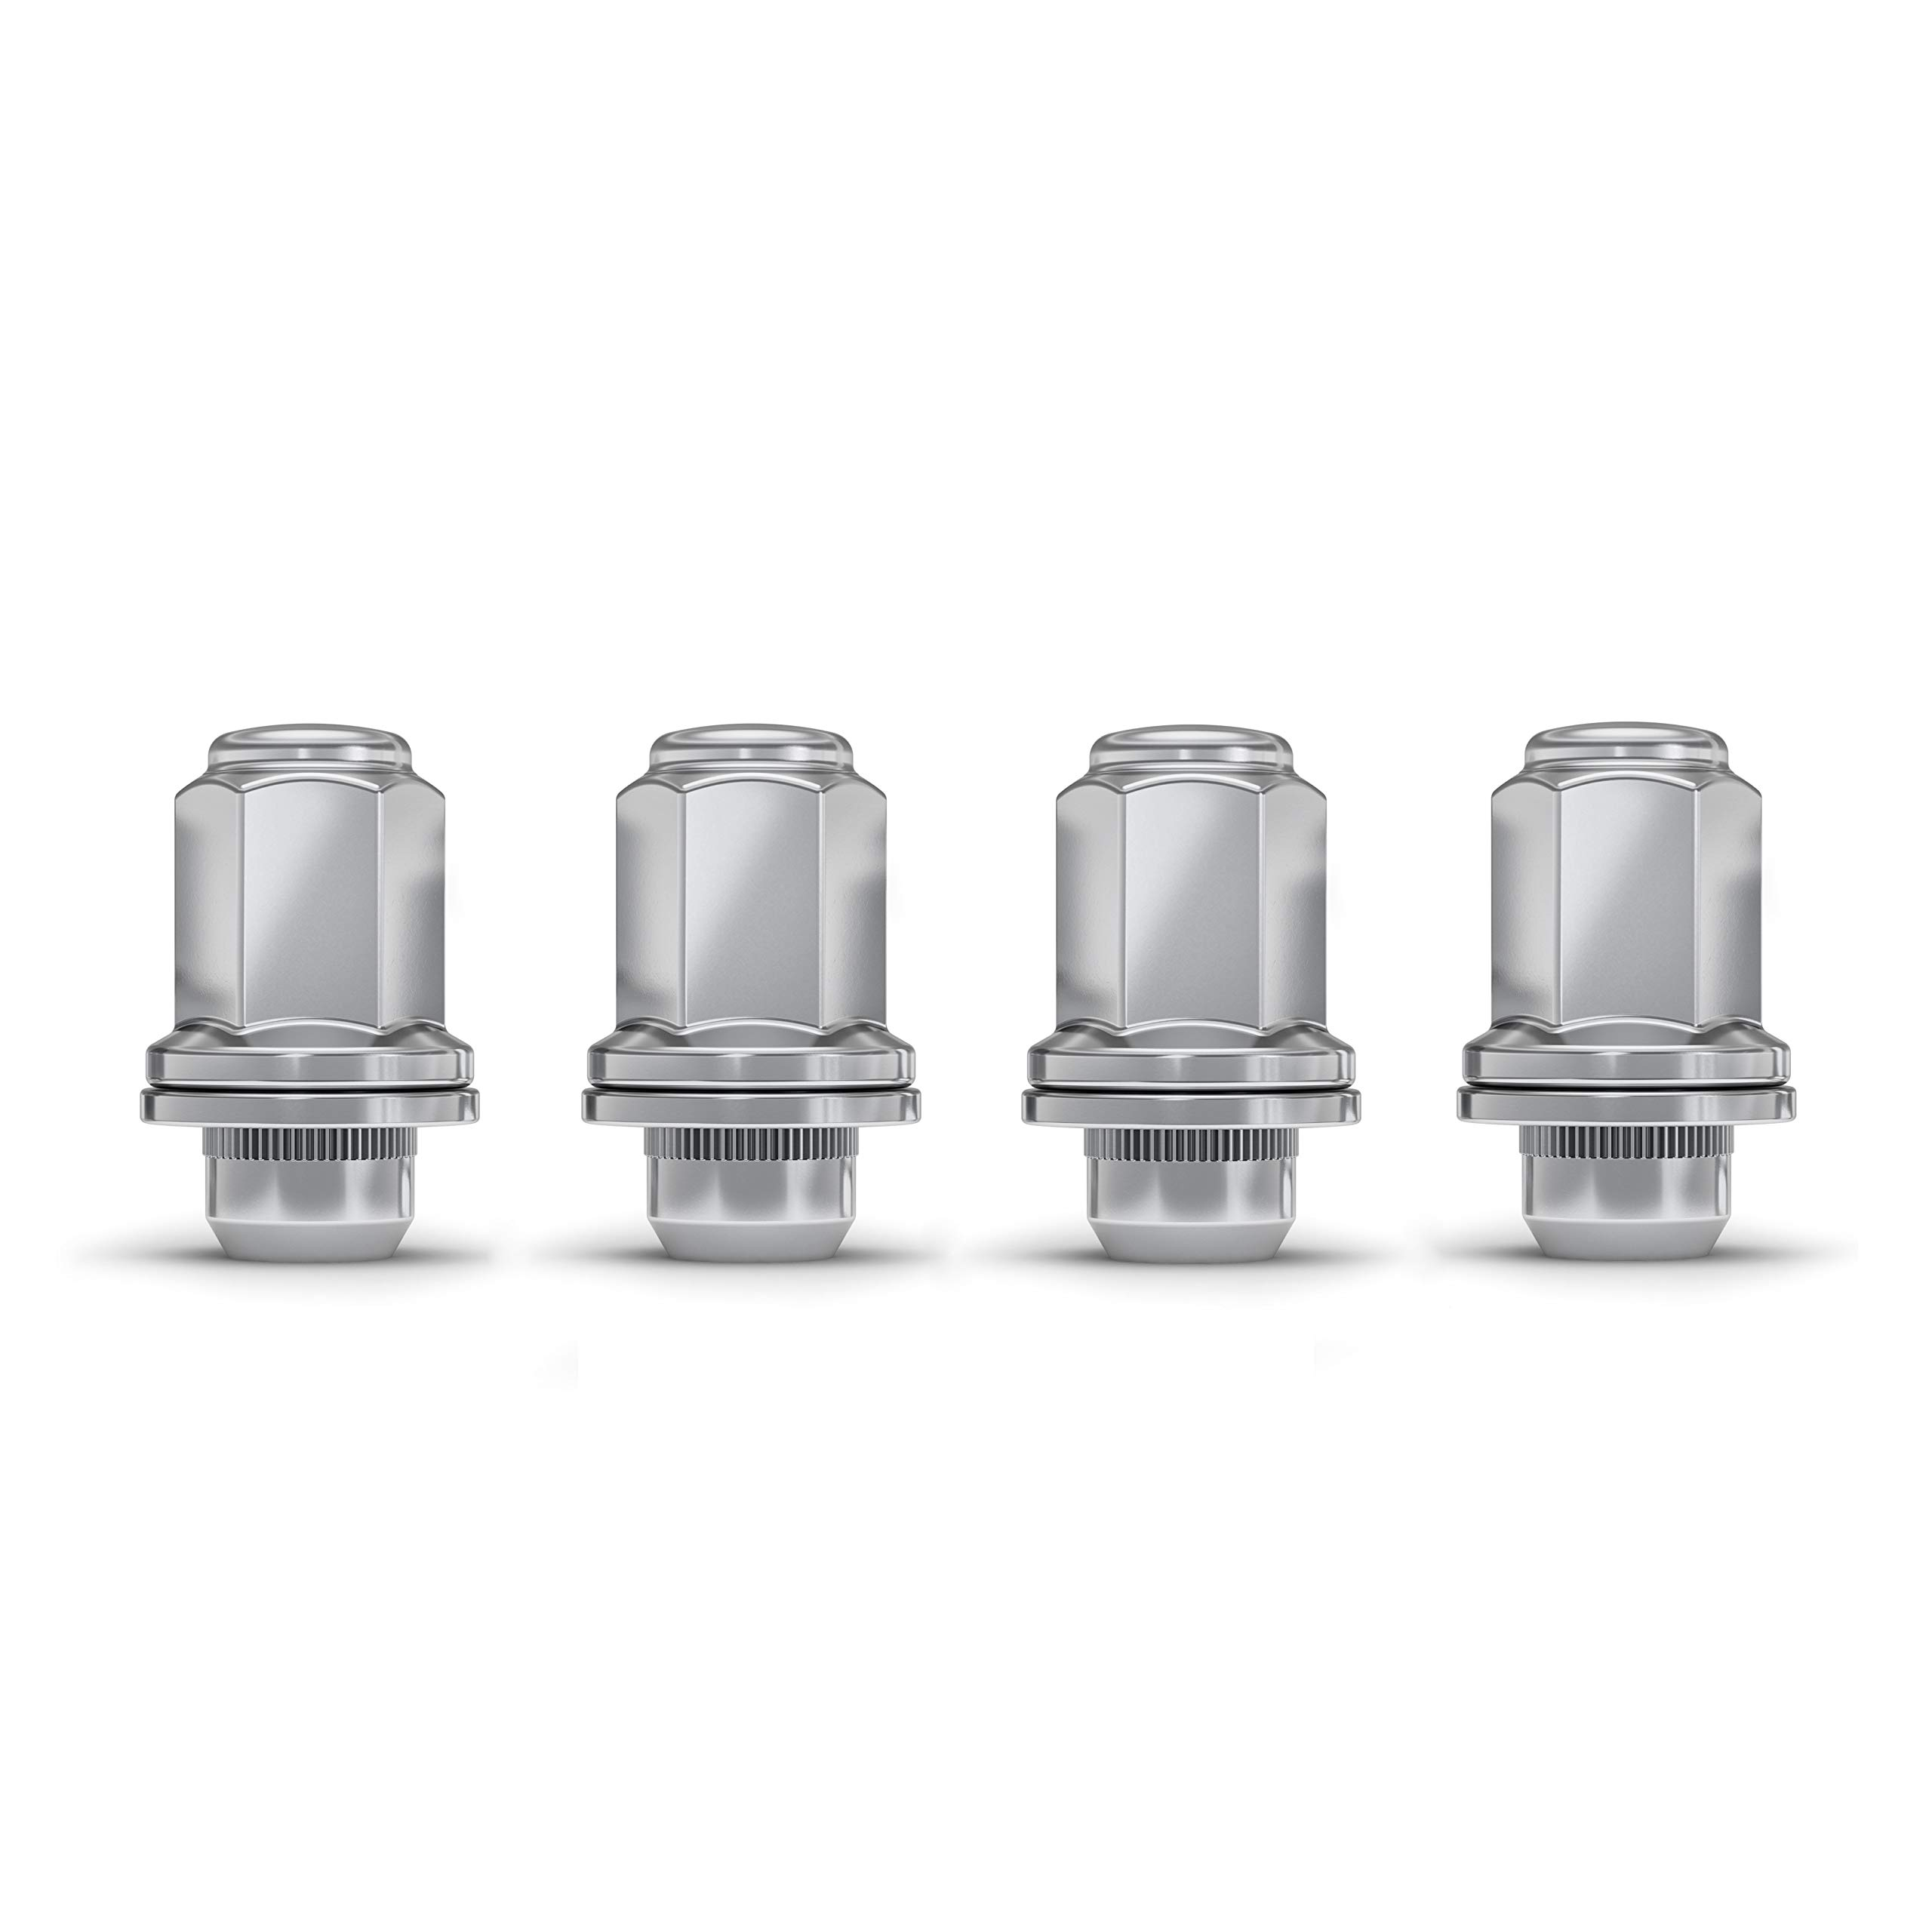 White Knight 5307L Chrome M12x1.50 Toyota SUV OEM Factory Style Mag Lug Nut with Washer, 4 Pack by White Knight